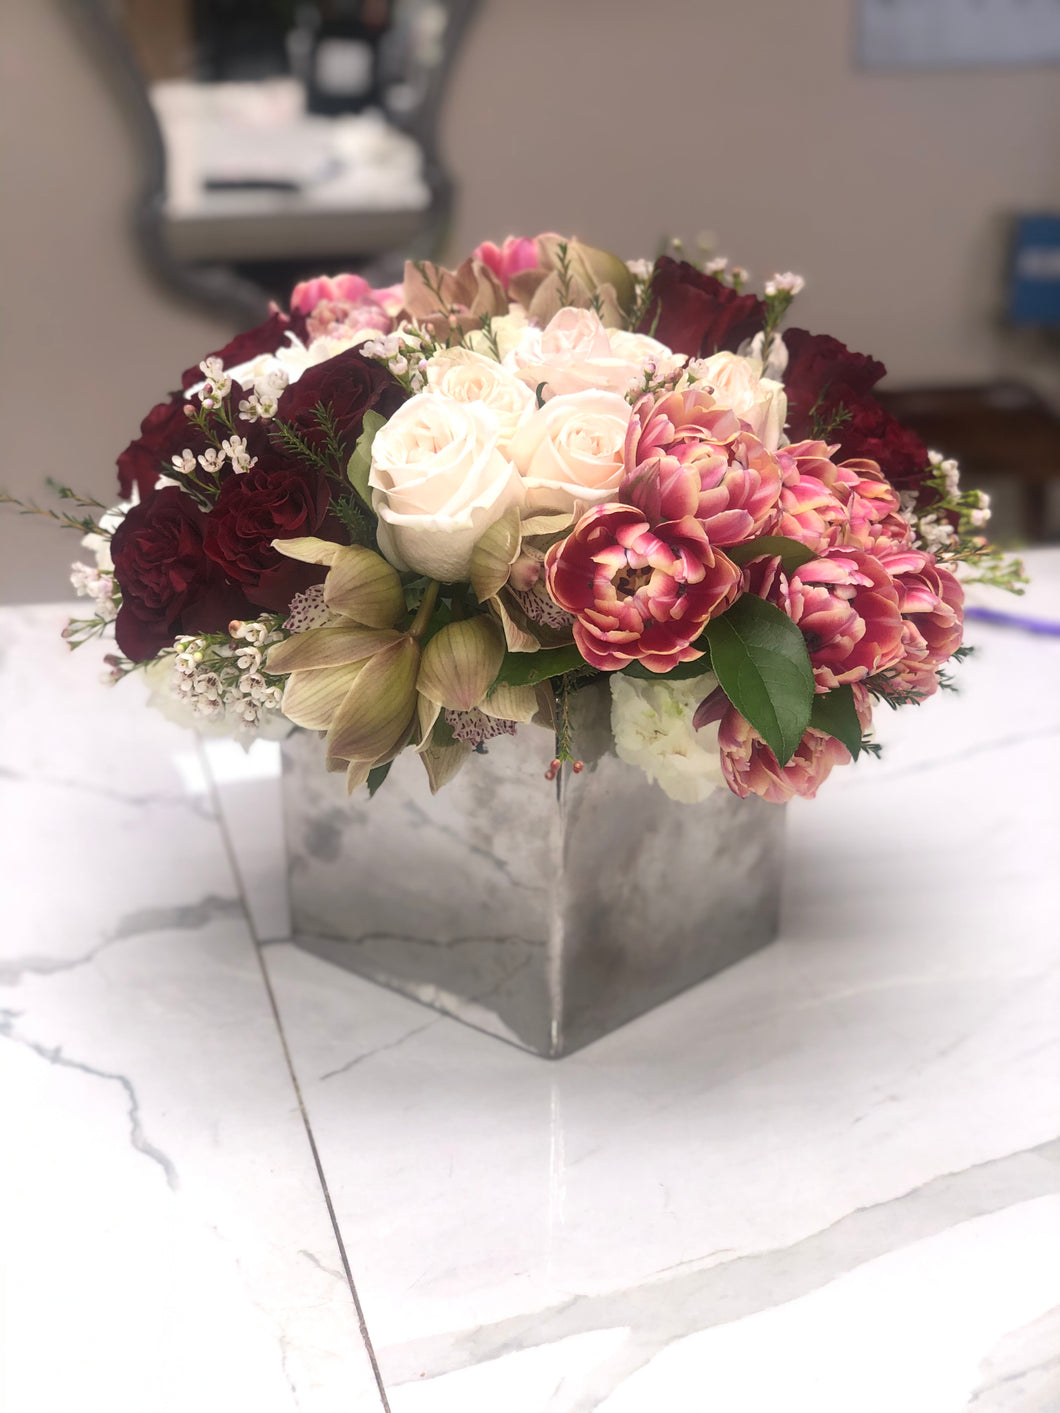 Cluster arrangements in a square vase